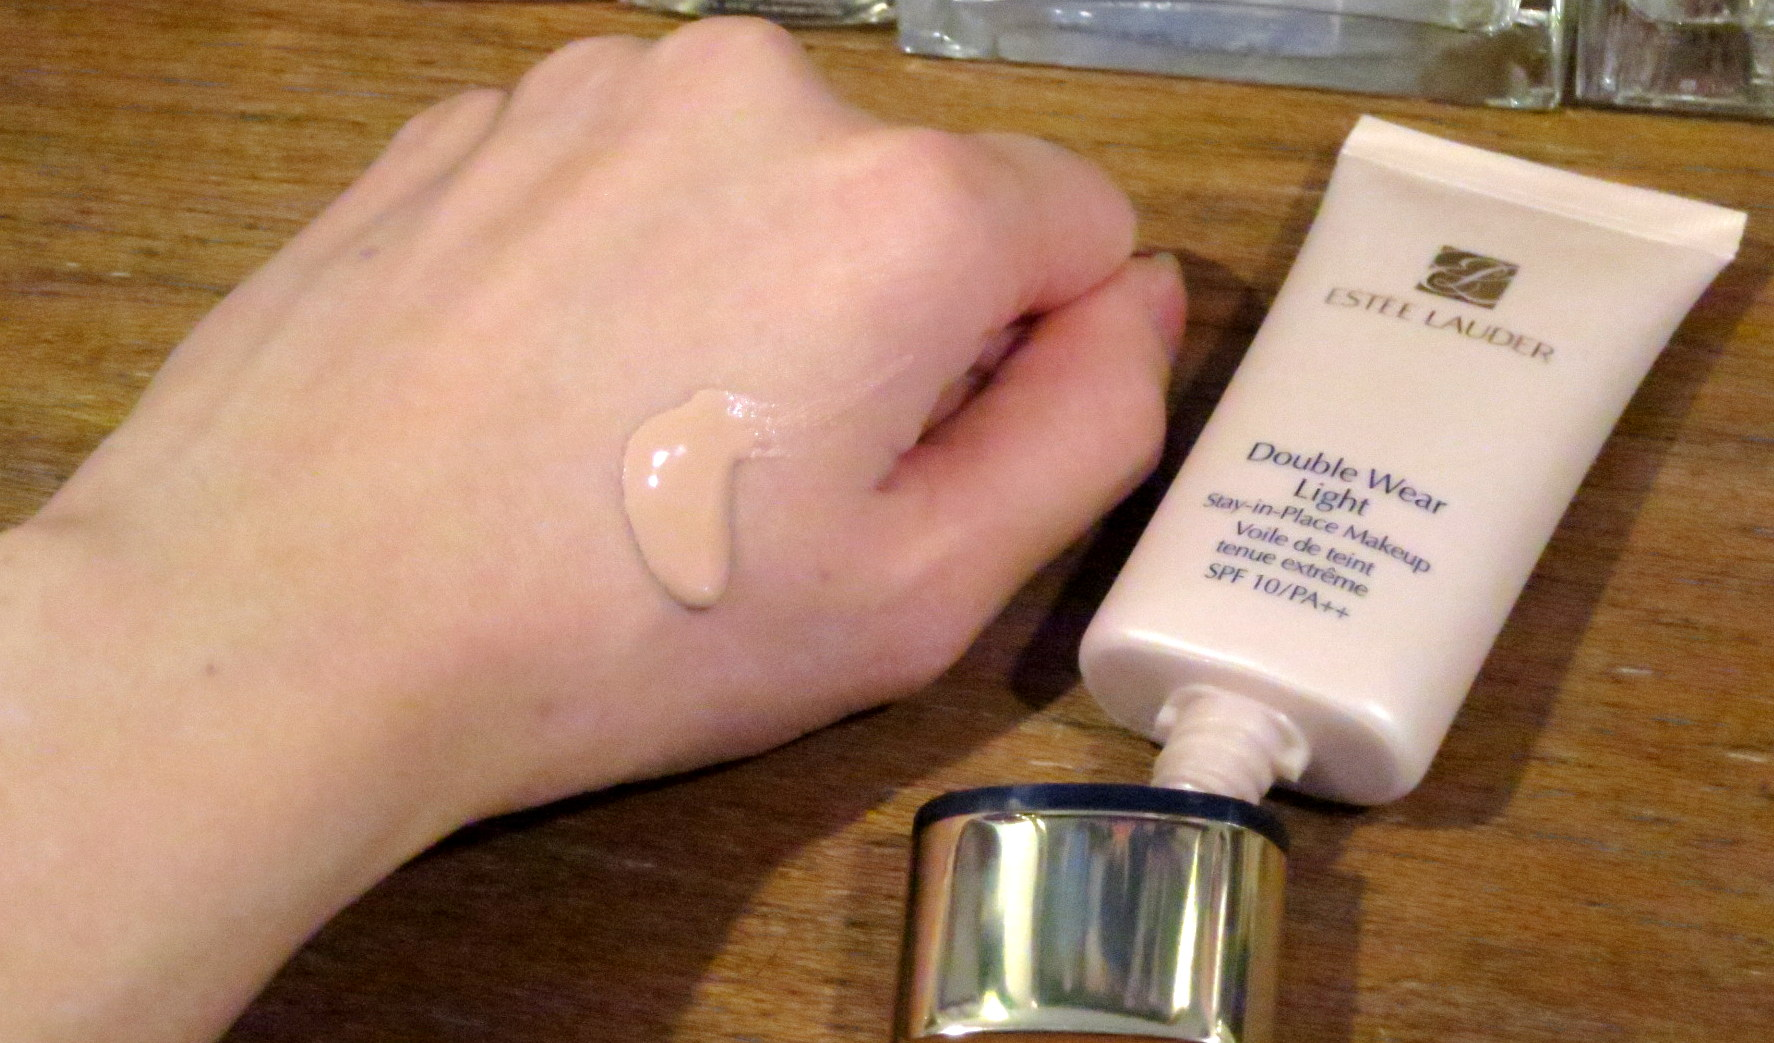 Review: Estee Lauder Double Wear – Light Makeup SPF10/PA++ ...